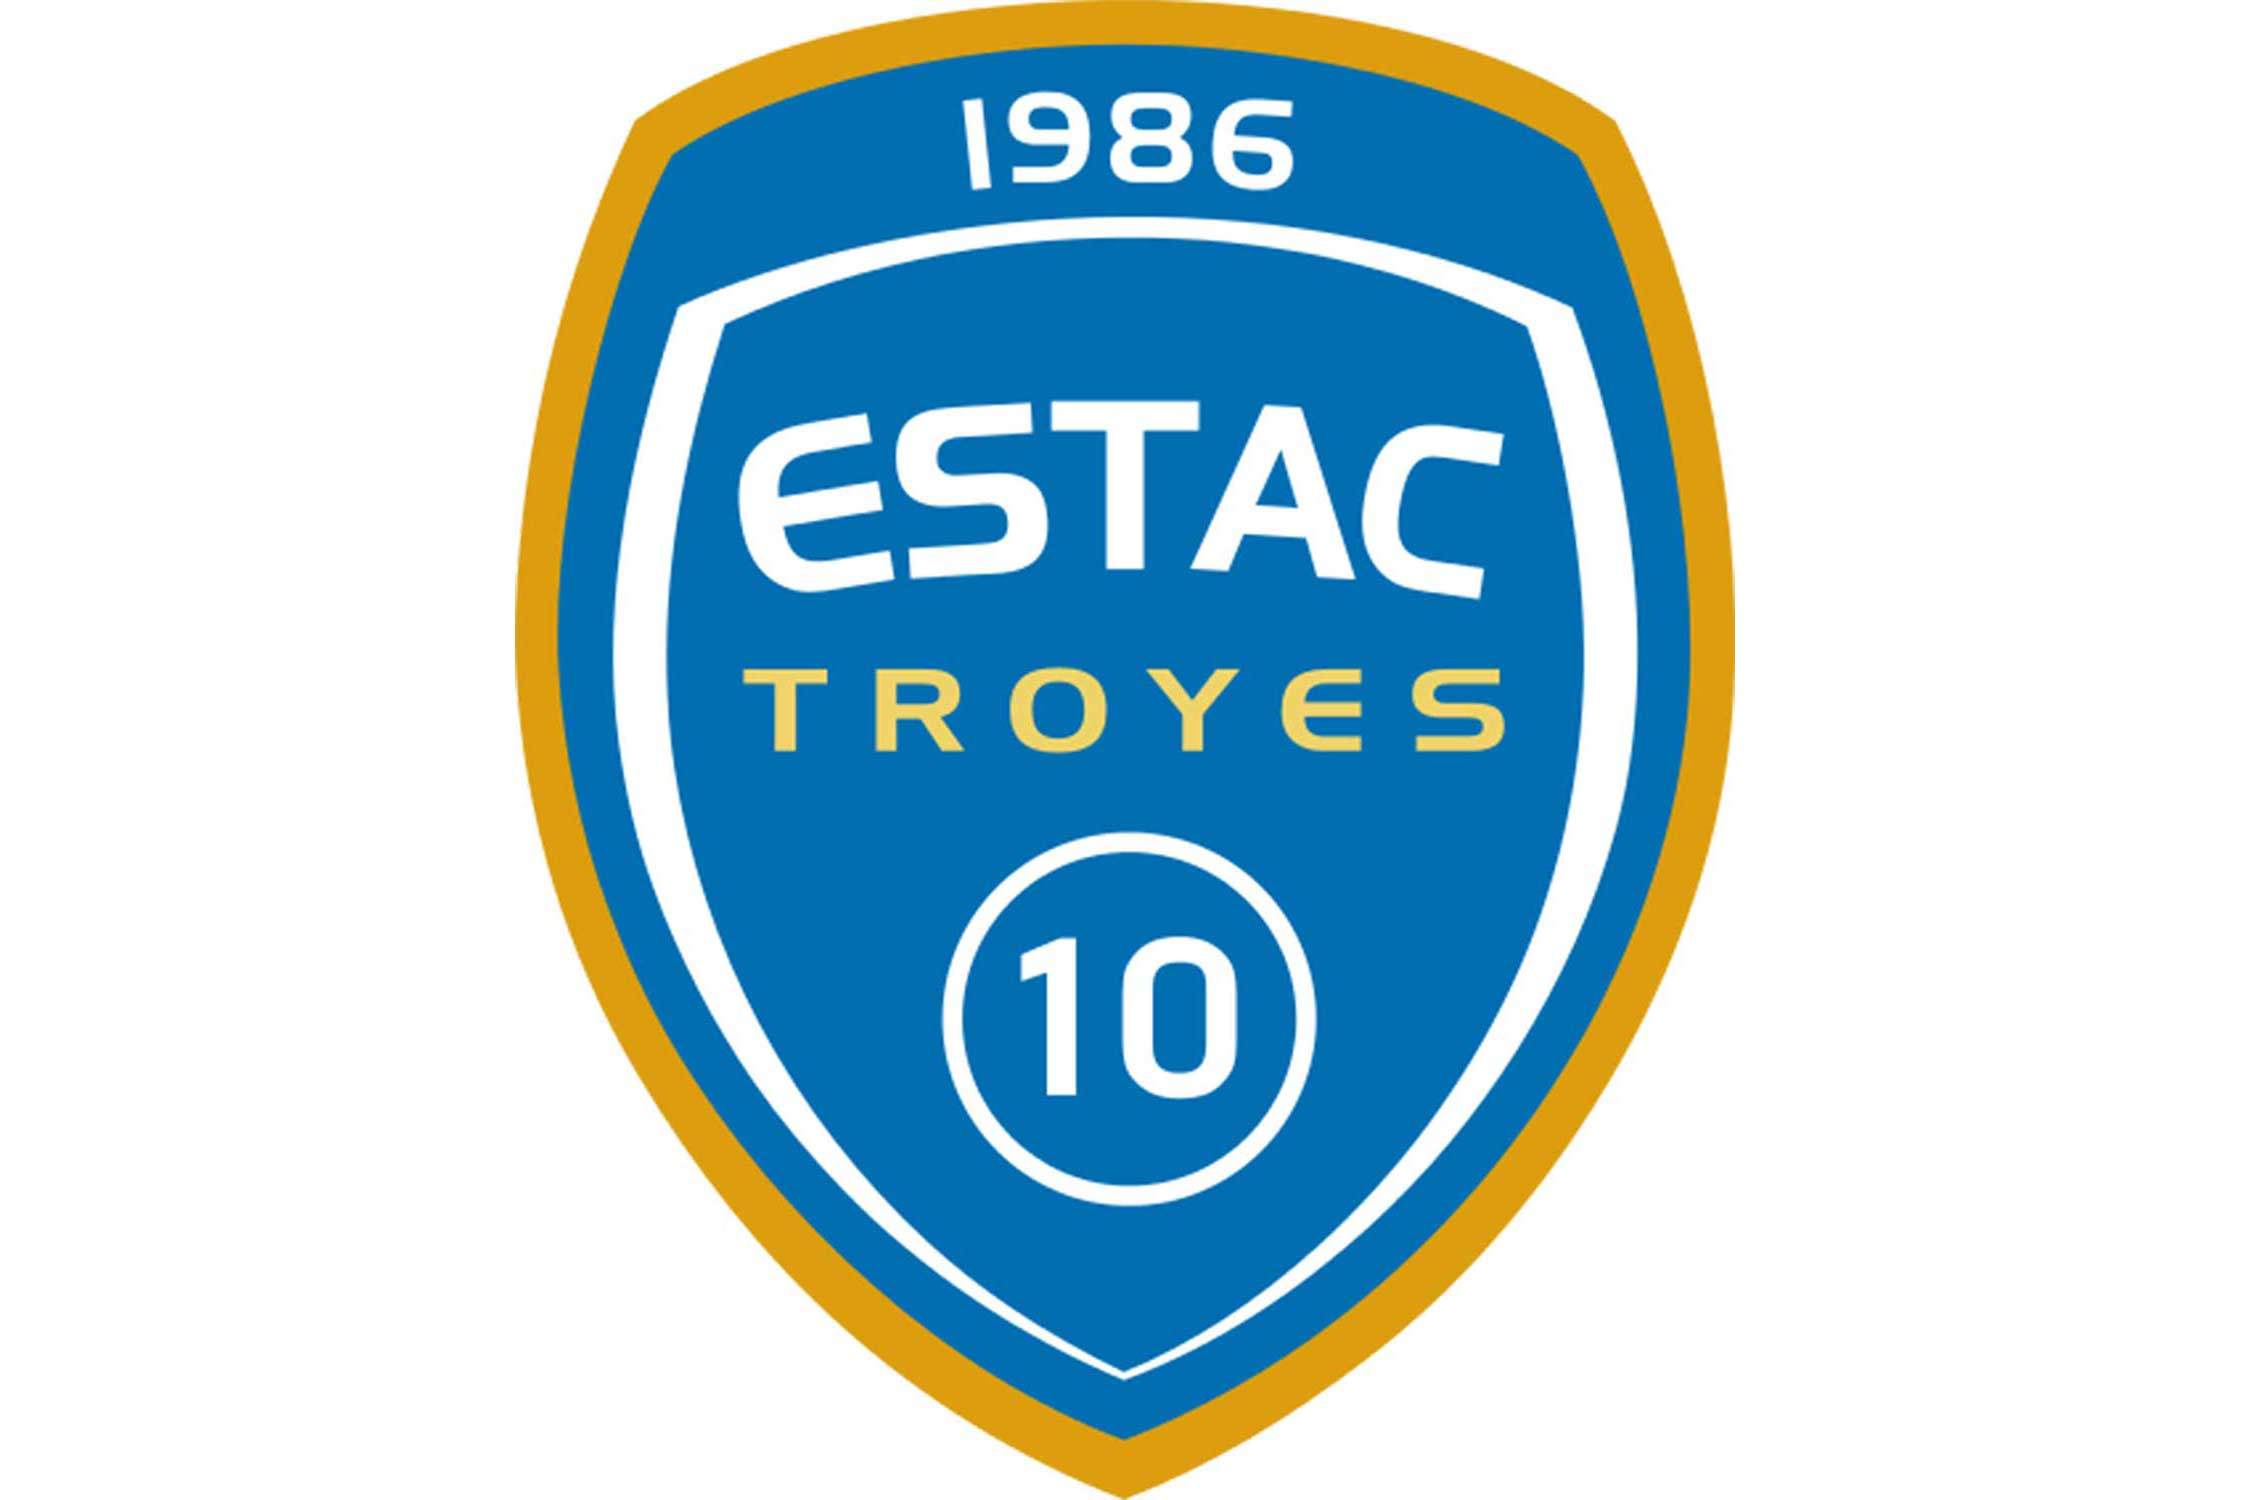 The country of France is separated into 101 departments, each of which is numbered. That number is then used in zip codes, license plates and for other official uses. Aube, the department where Troyes is based, is No. 10, hence its use in the club's logo.